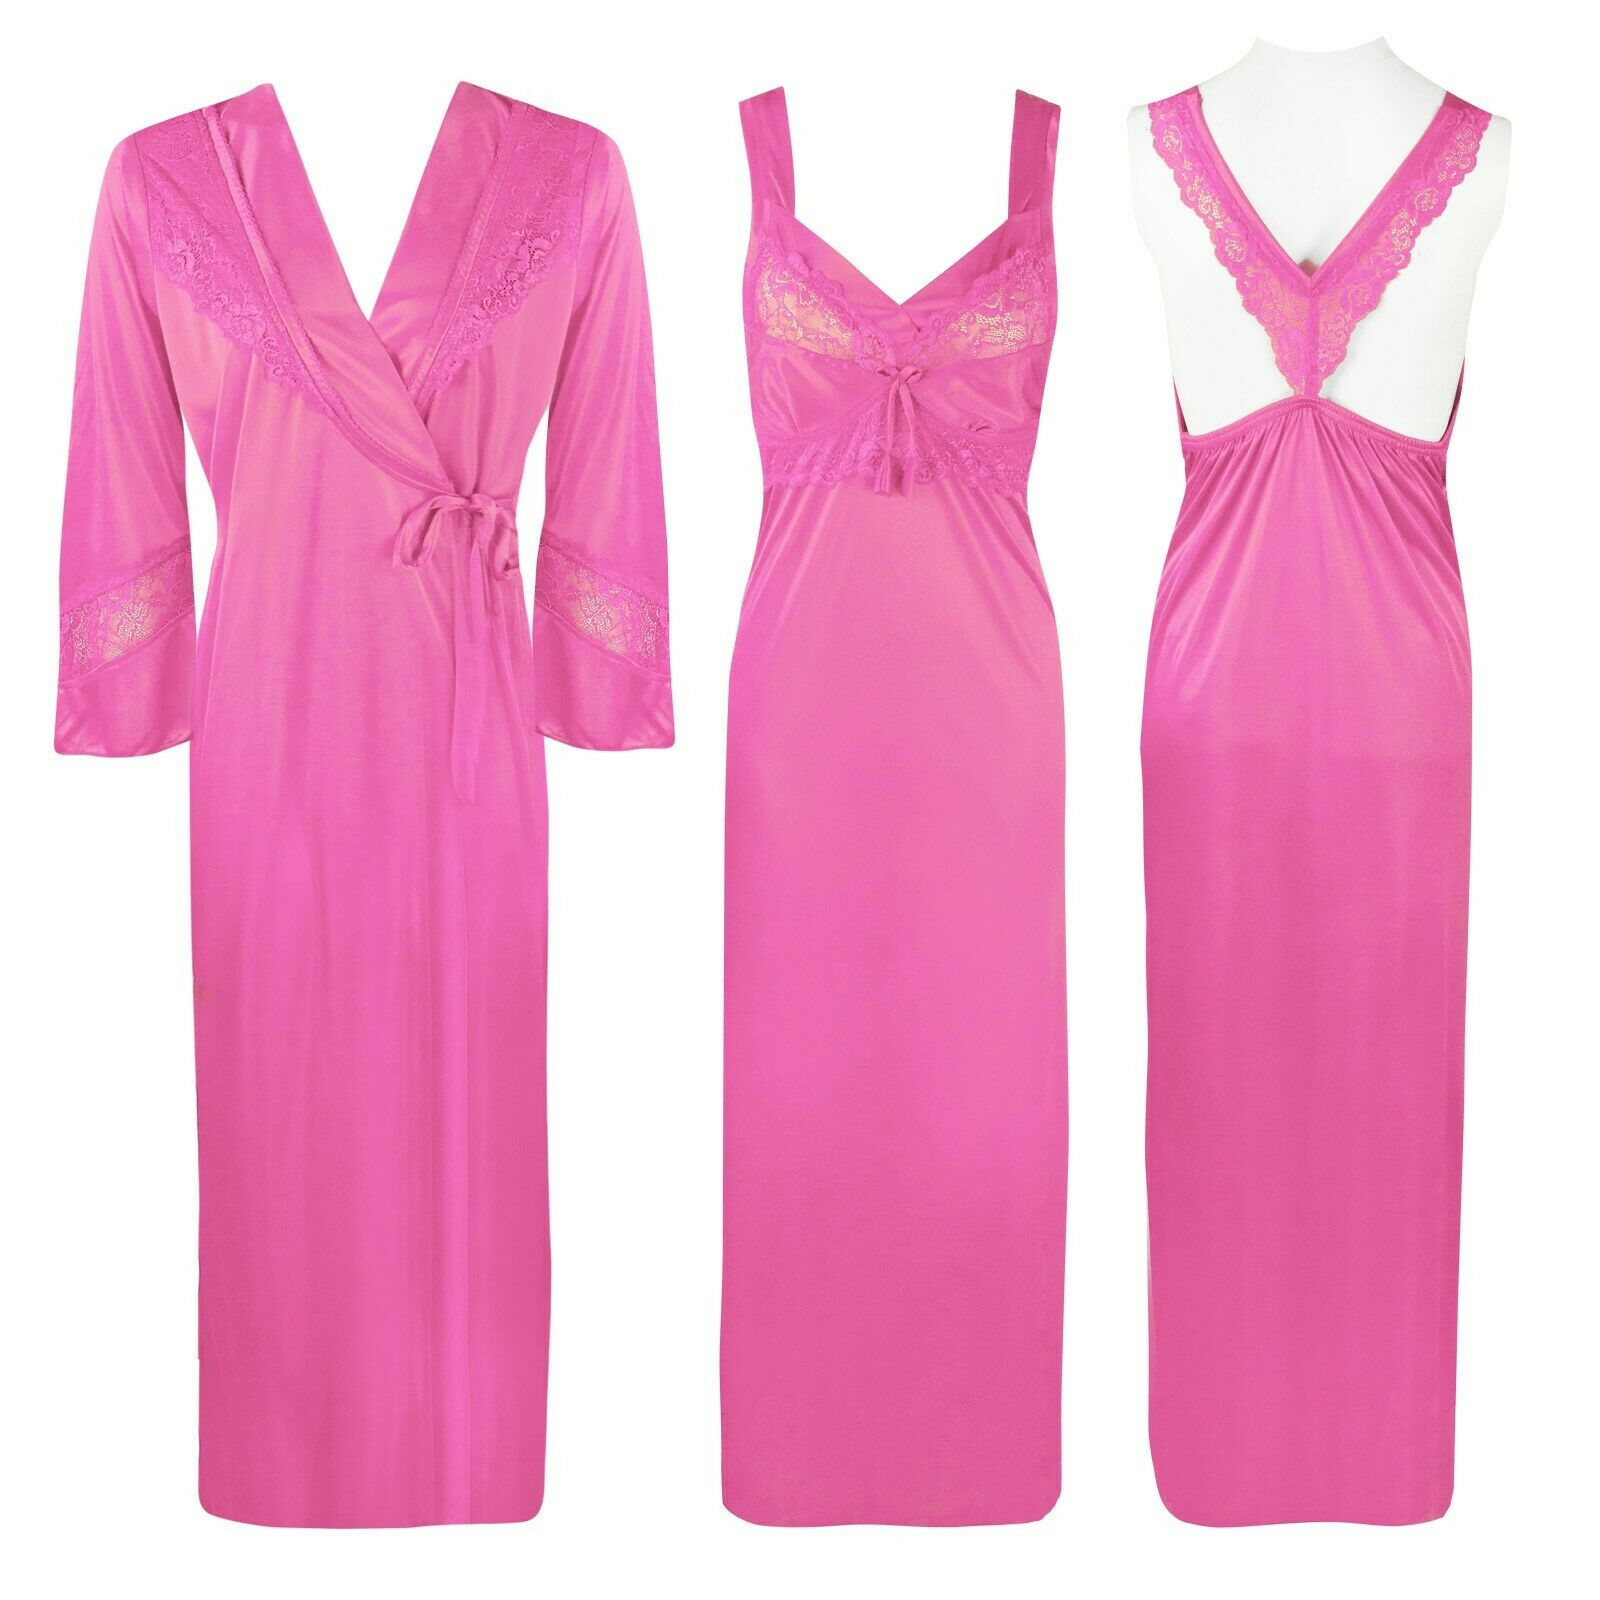 Satin 2 Pcs Cross Back Nighty With Robe [colour]- Hautie UK, #Nightfashion | #Underfashion